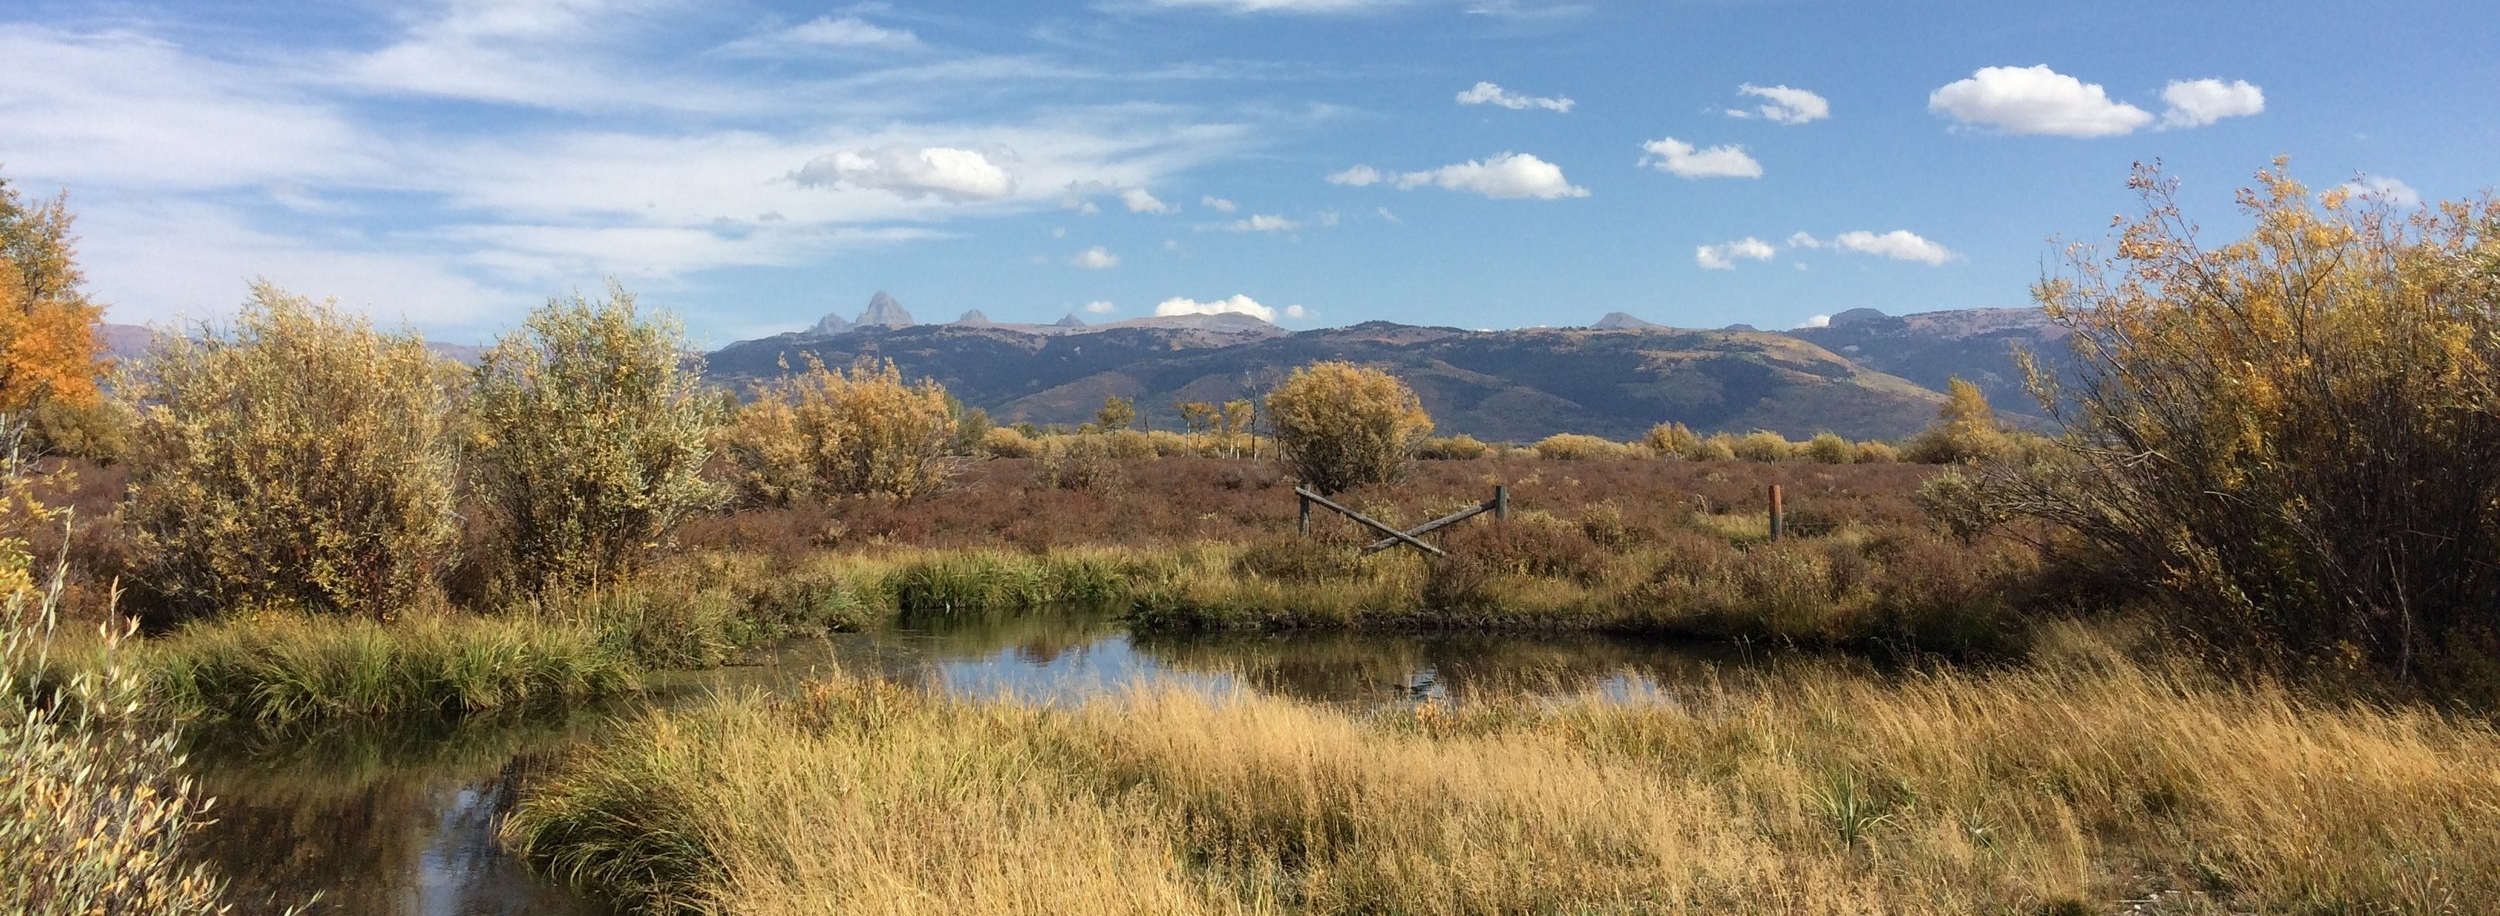 wetland restored by environmental consulting firm intermountain aquatics